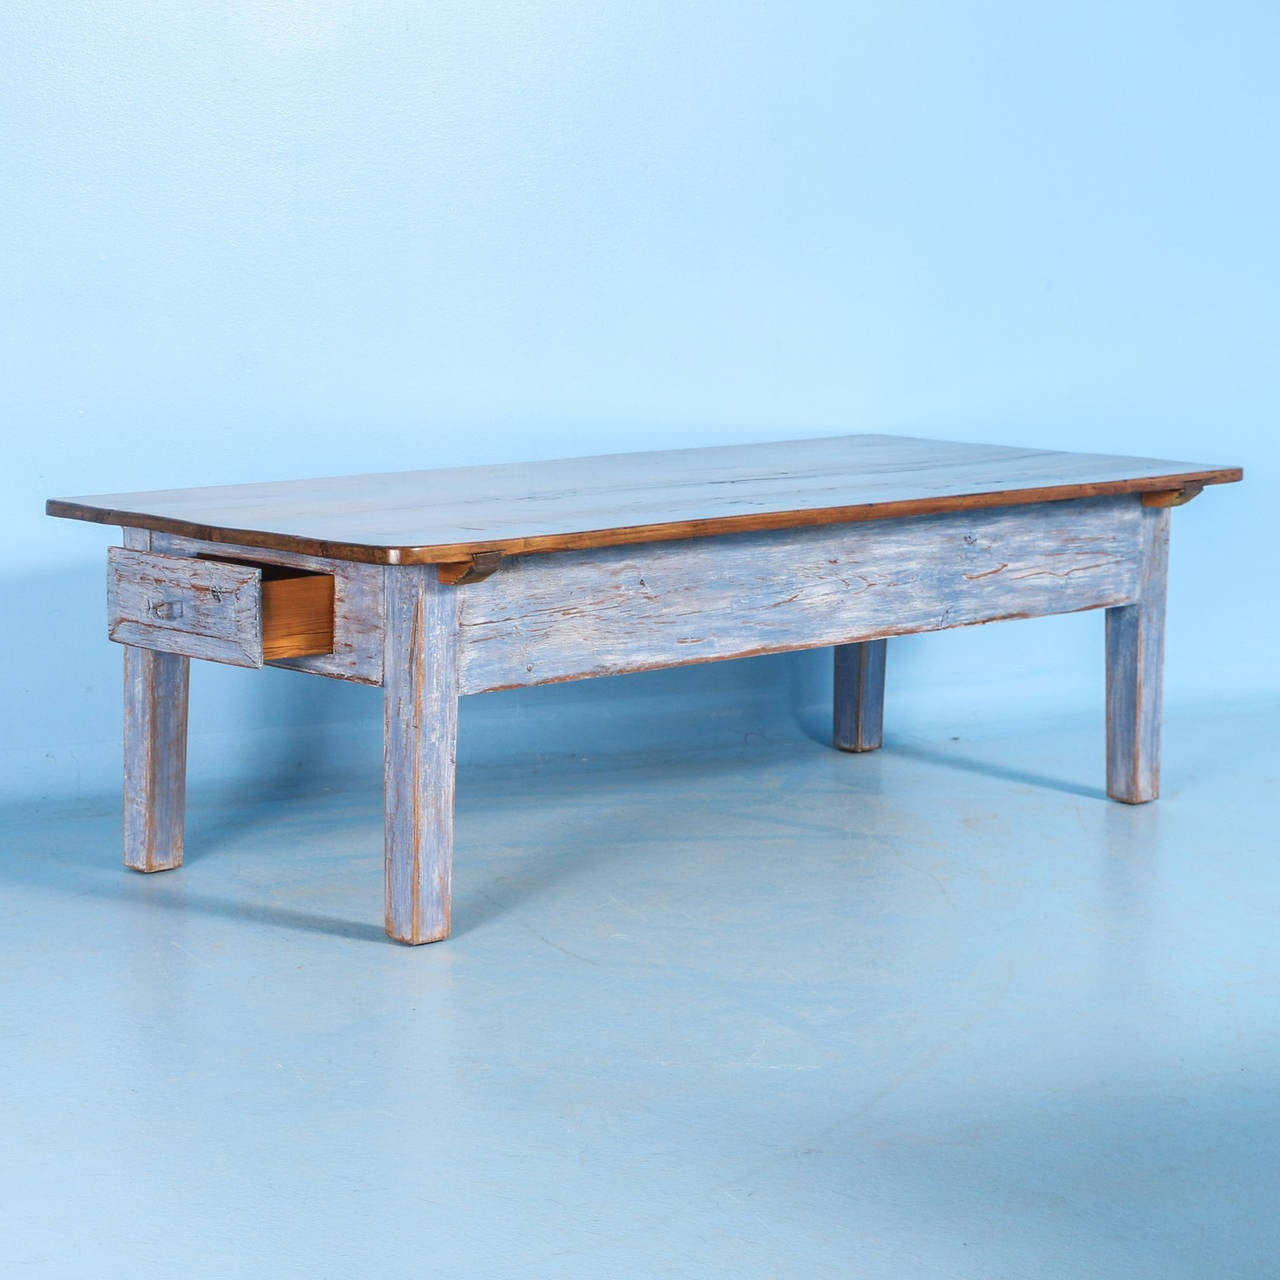 Antique Blue Swedish Pine Coffee Table, Circa 1860-1880 At